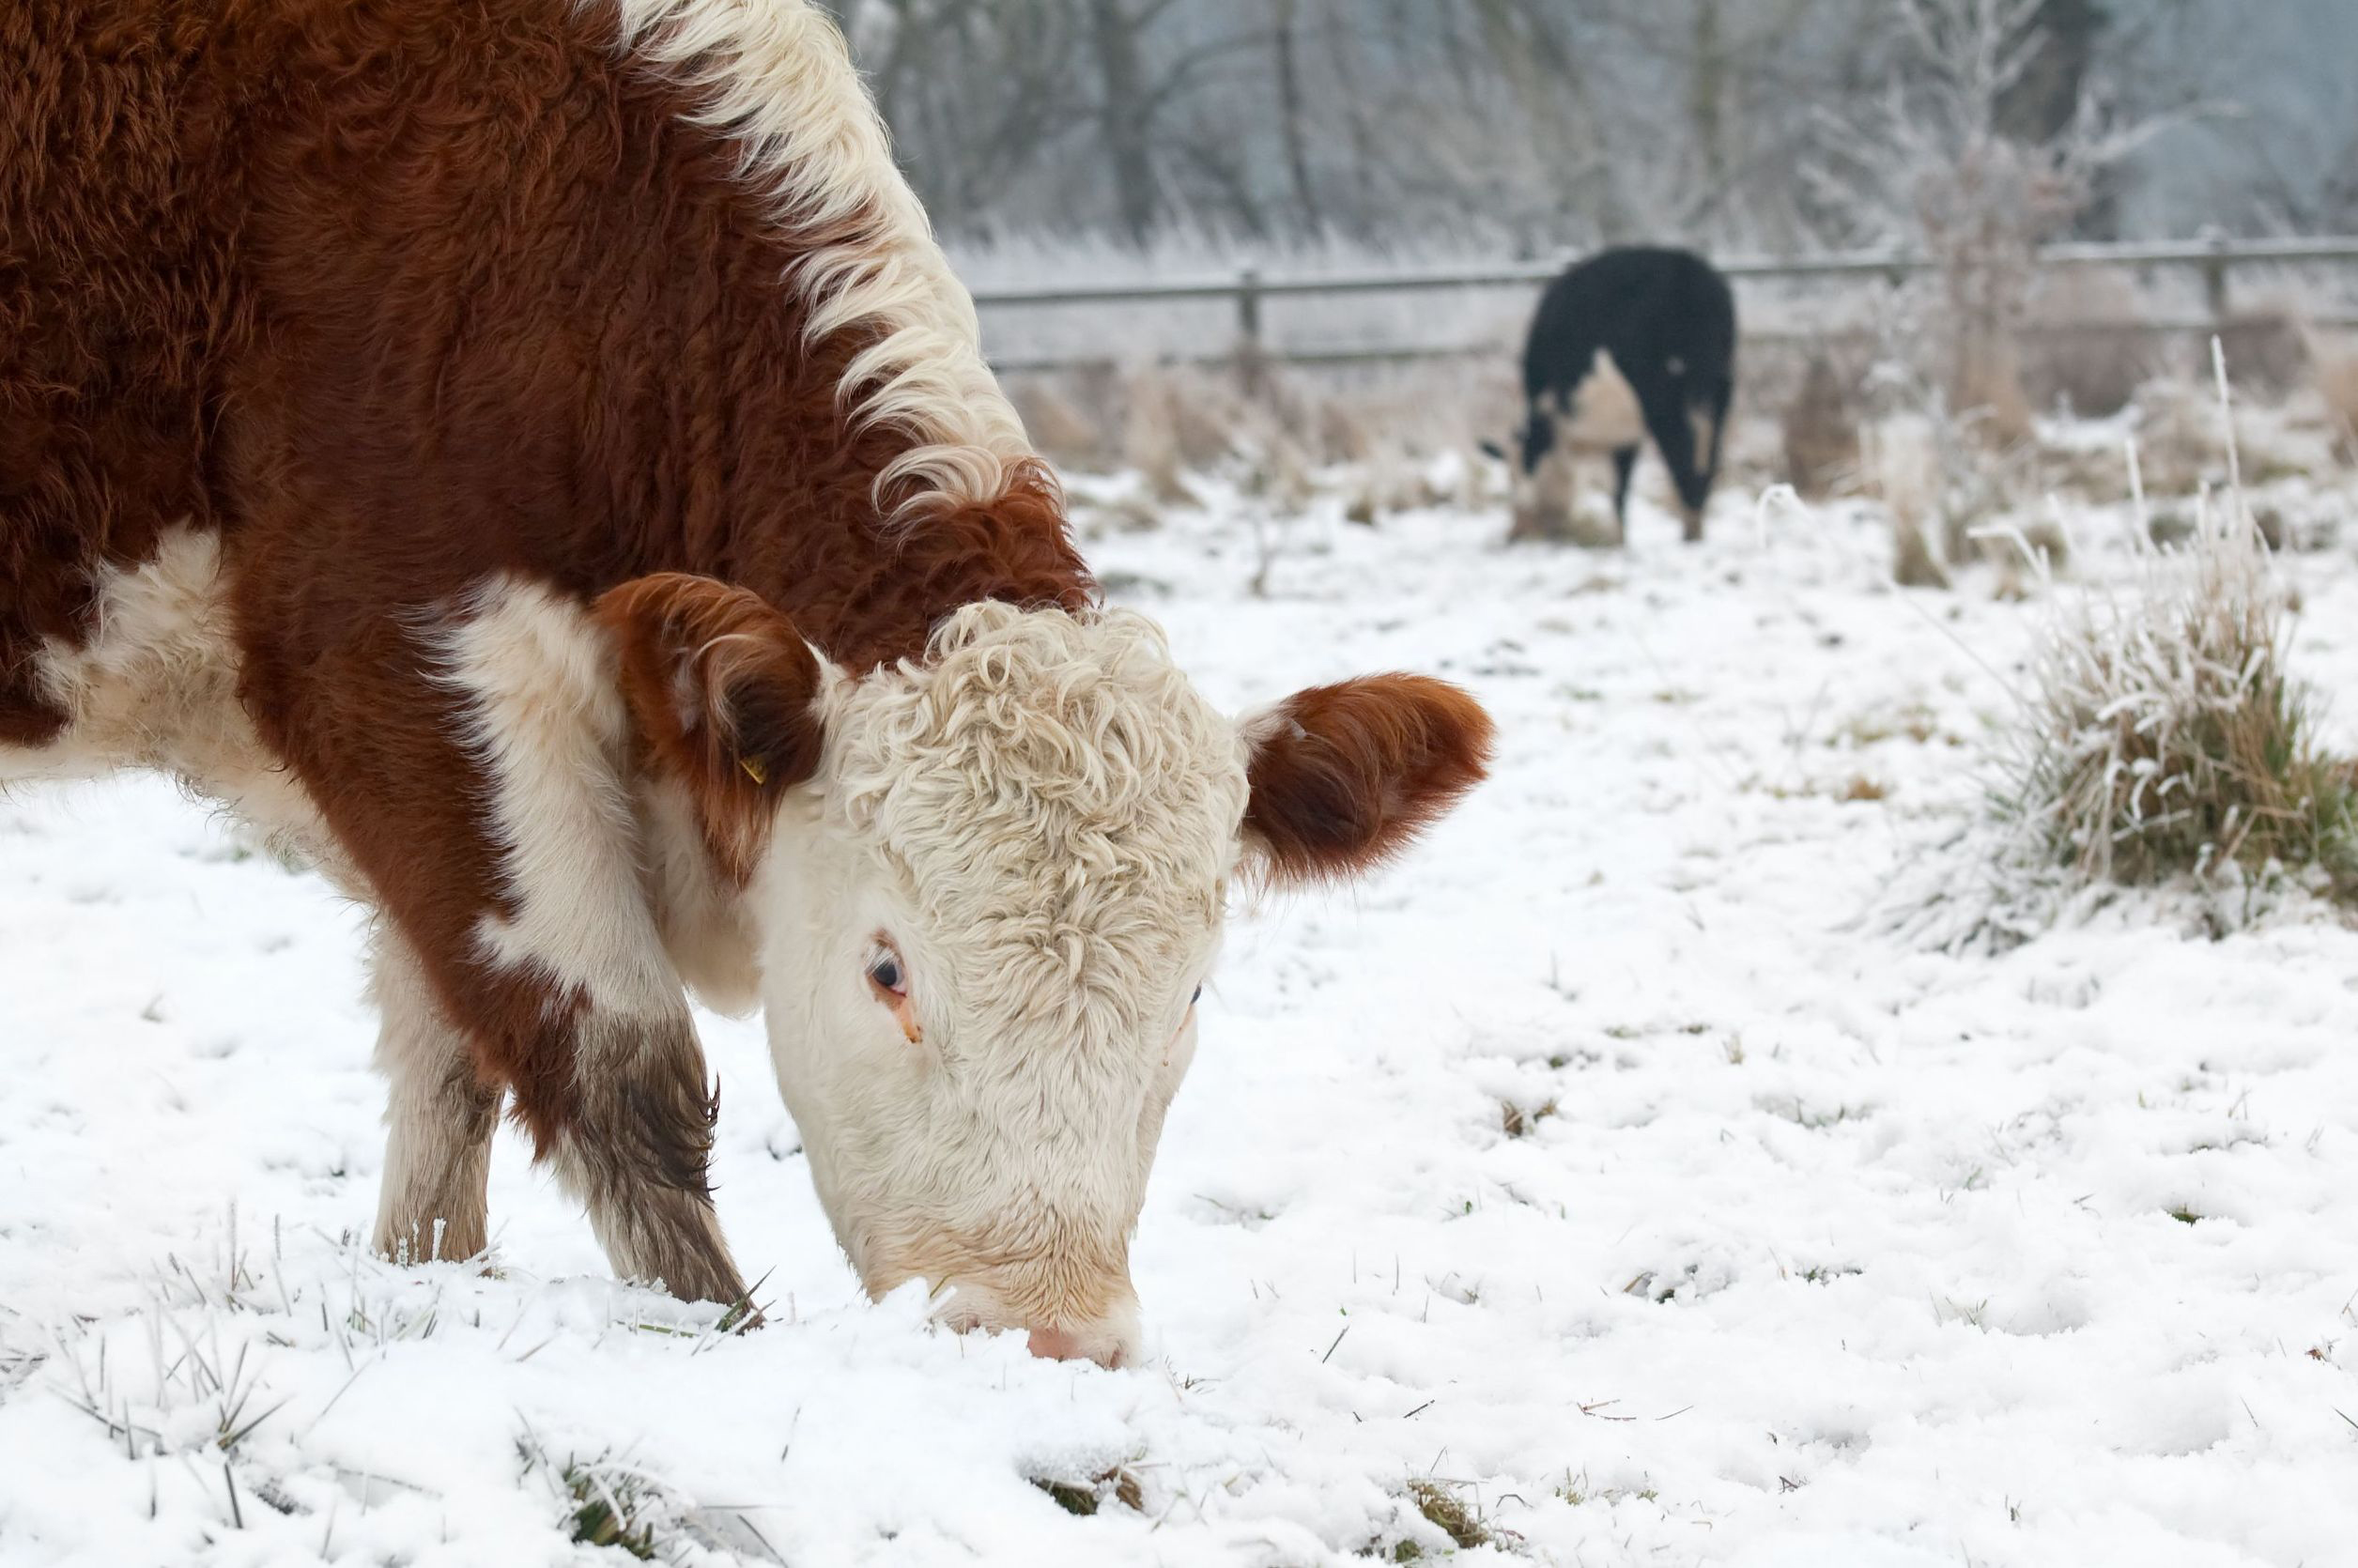 Protect Livestock During Winter